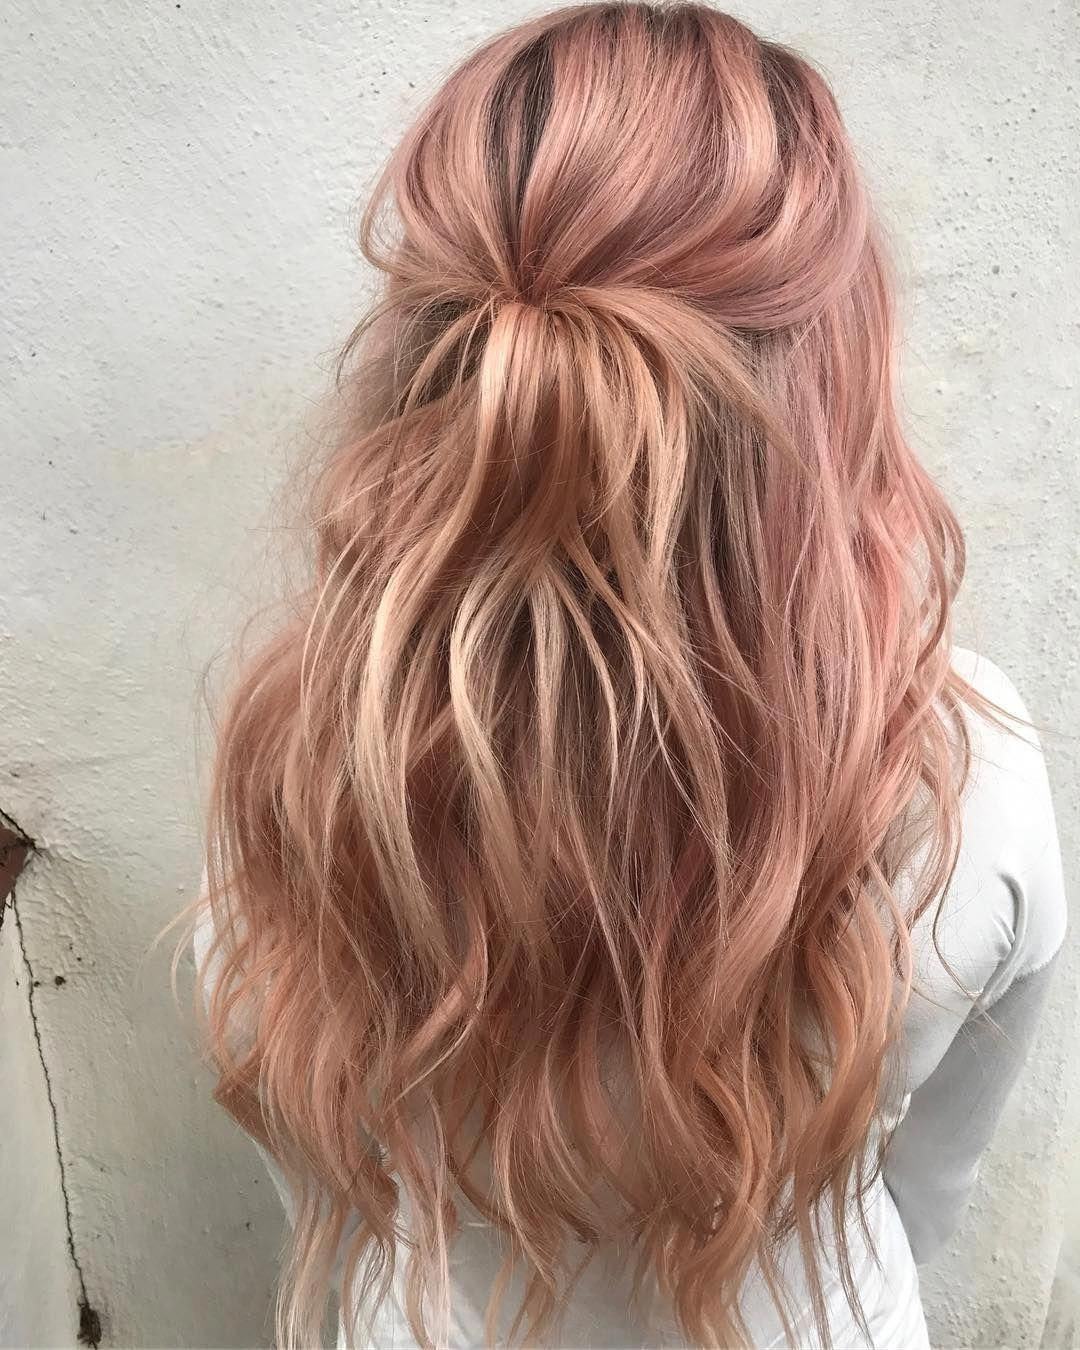 P I N T E R E S T Candy Milk Hair Styles Hair Color Rose Gold Hair Color Pink